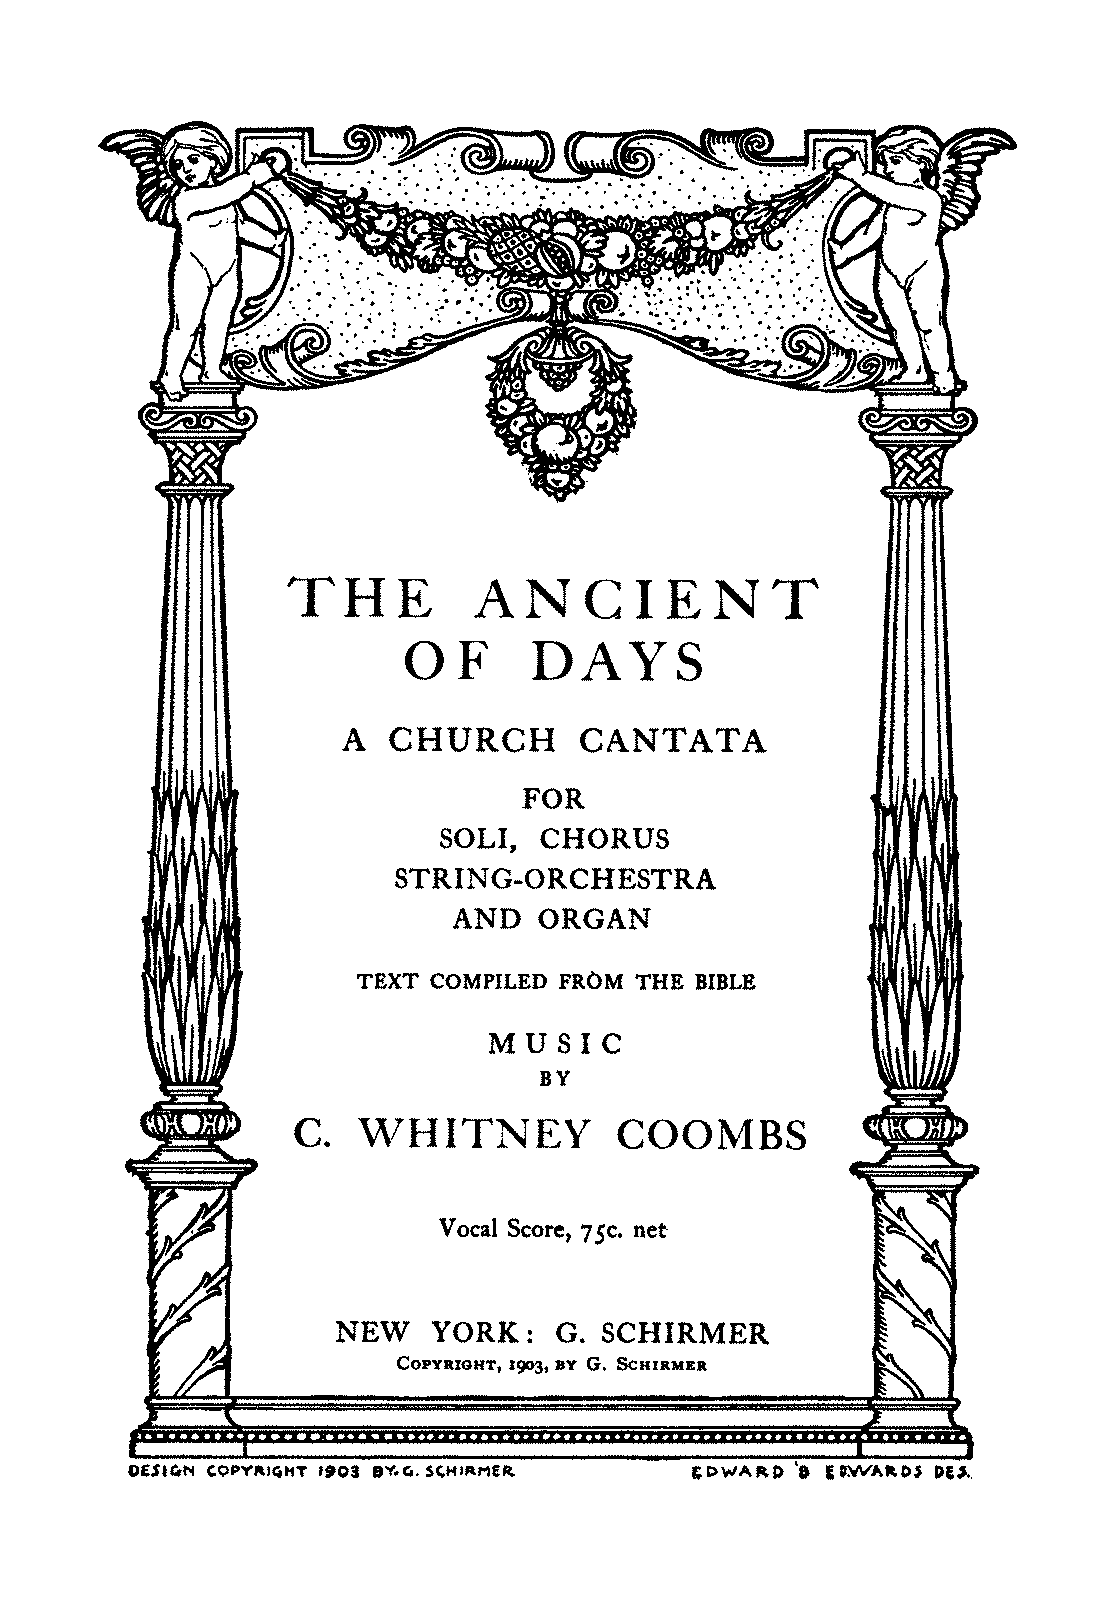 PMLP657819-CWCoombs The Ancient of Days vocalscore.pdf